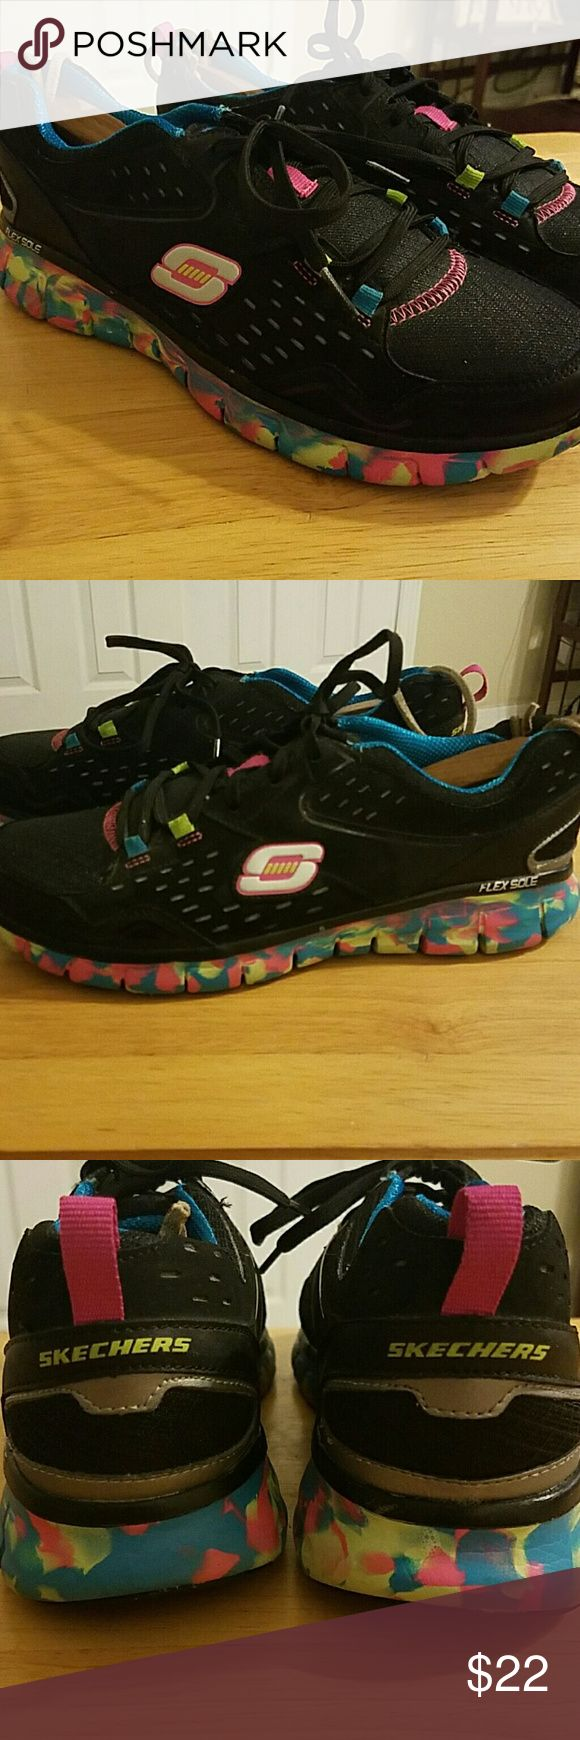 Skechers  ladies joggers with flex sole Ladies Skechers size 9 in EUC with flex sole and comfort support and multi colored tread. Skechers Shoes Athletic Shoes